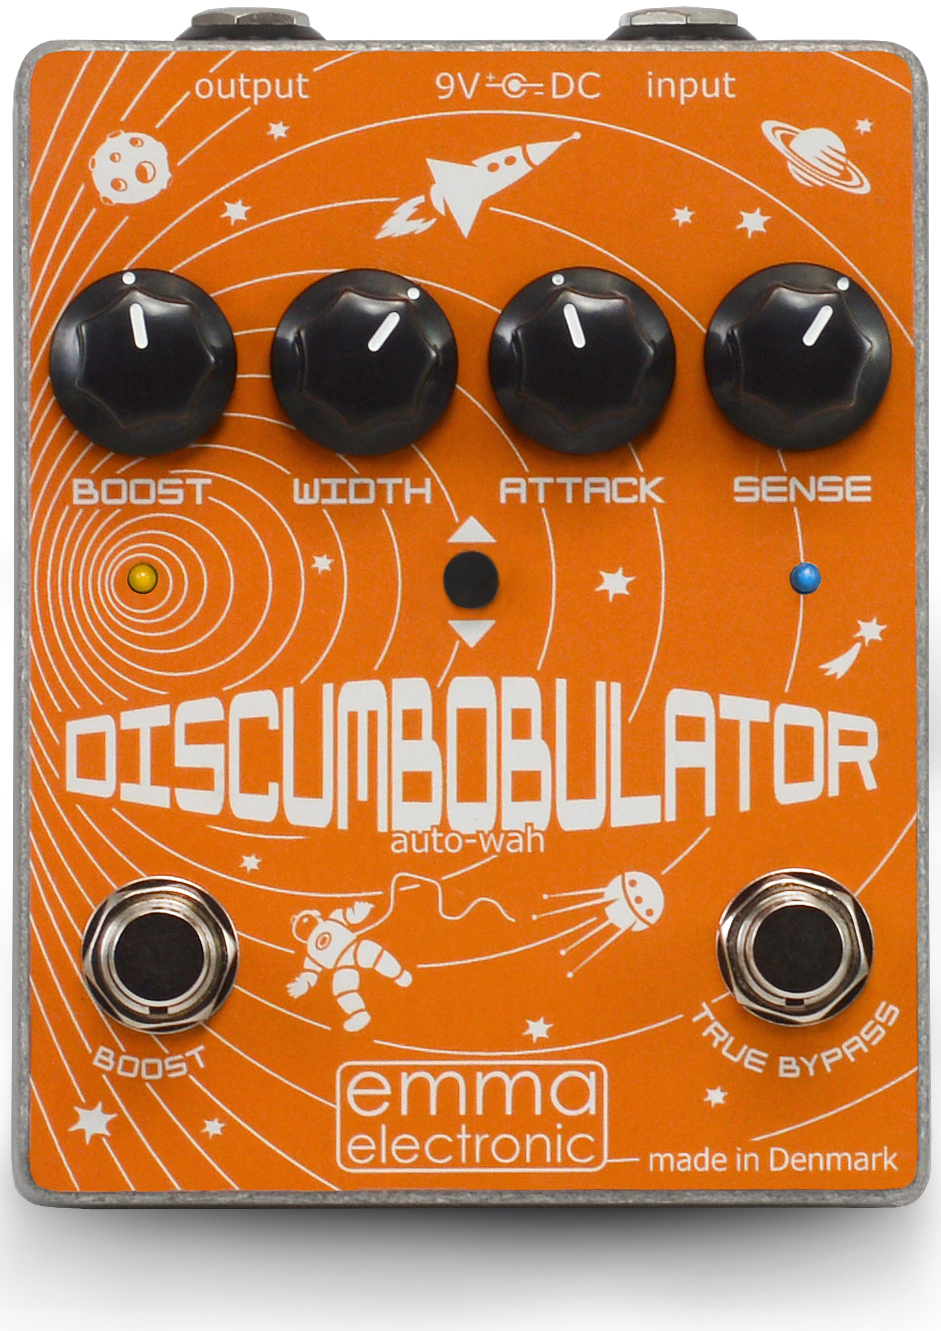 DiscumBOBulator